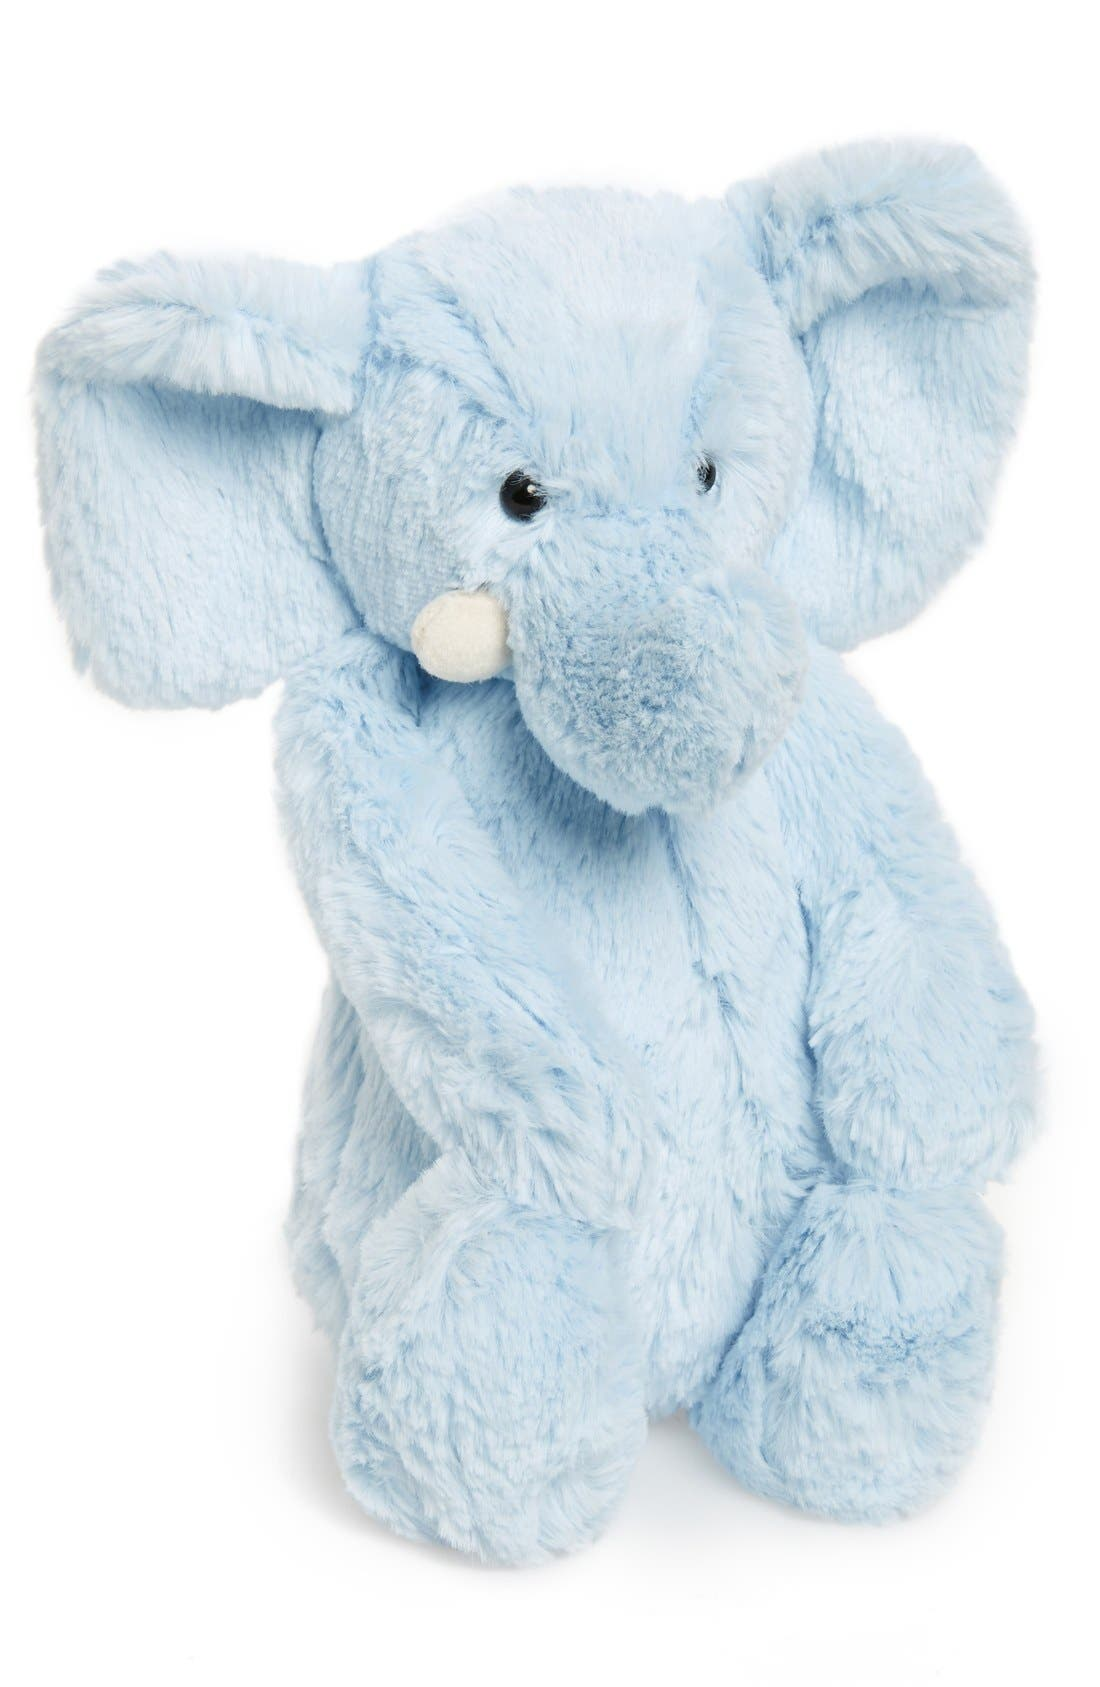 Alternate Image 1 Selected - Jellycat Chime Stuffed Elephant (Nordstrom Exclusive)